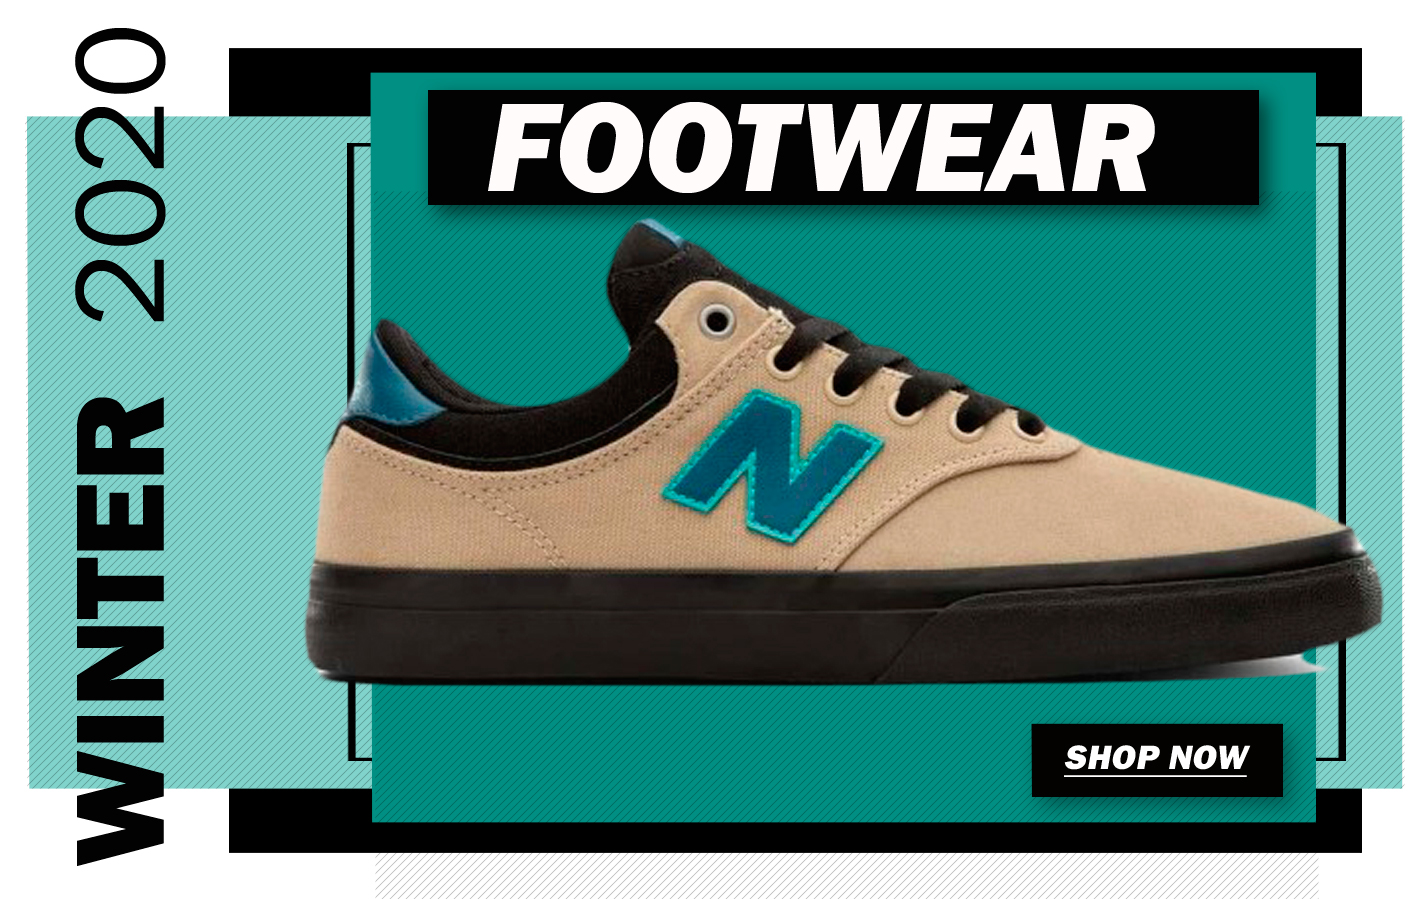 The best prices and service on all the best Skate Shoes in the UK